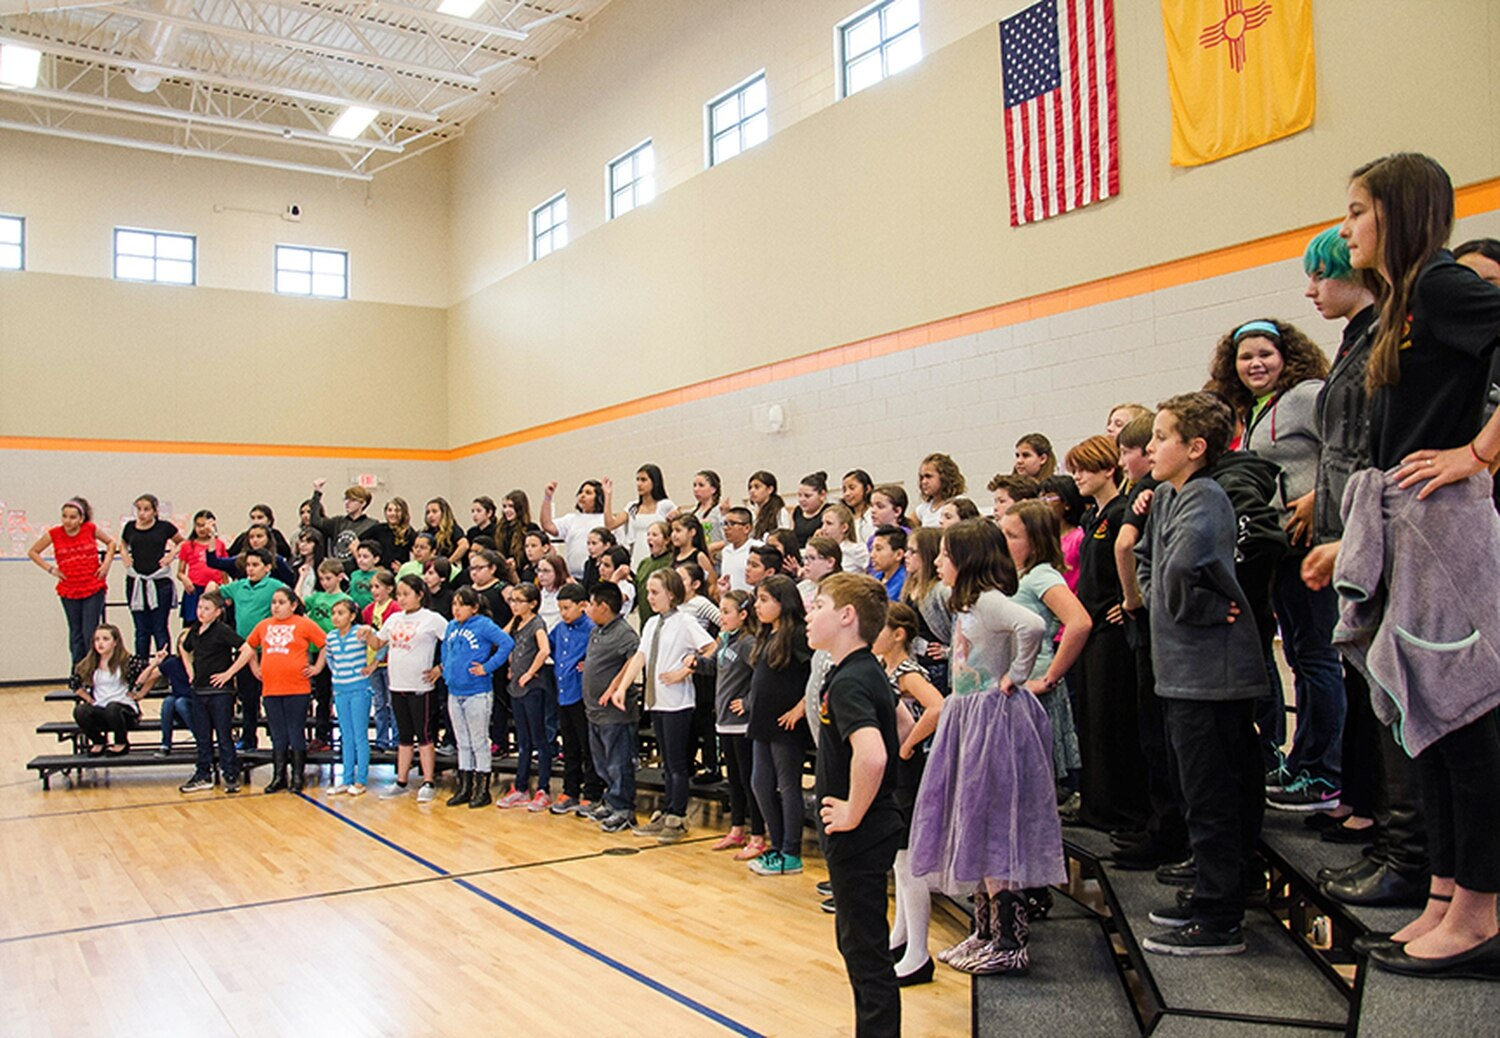 Young students from various Santa Fe schools take part in the annual choral performance, Cantamos Santa Fe, last April.